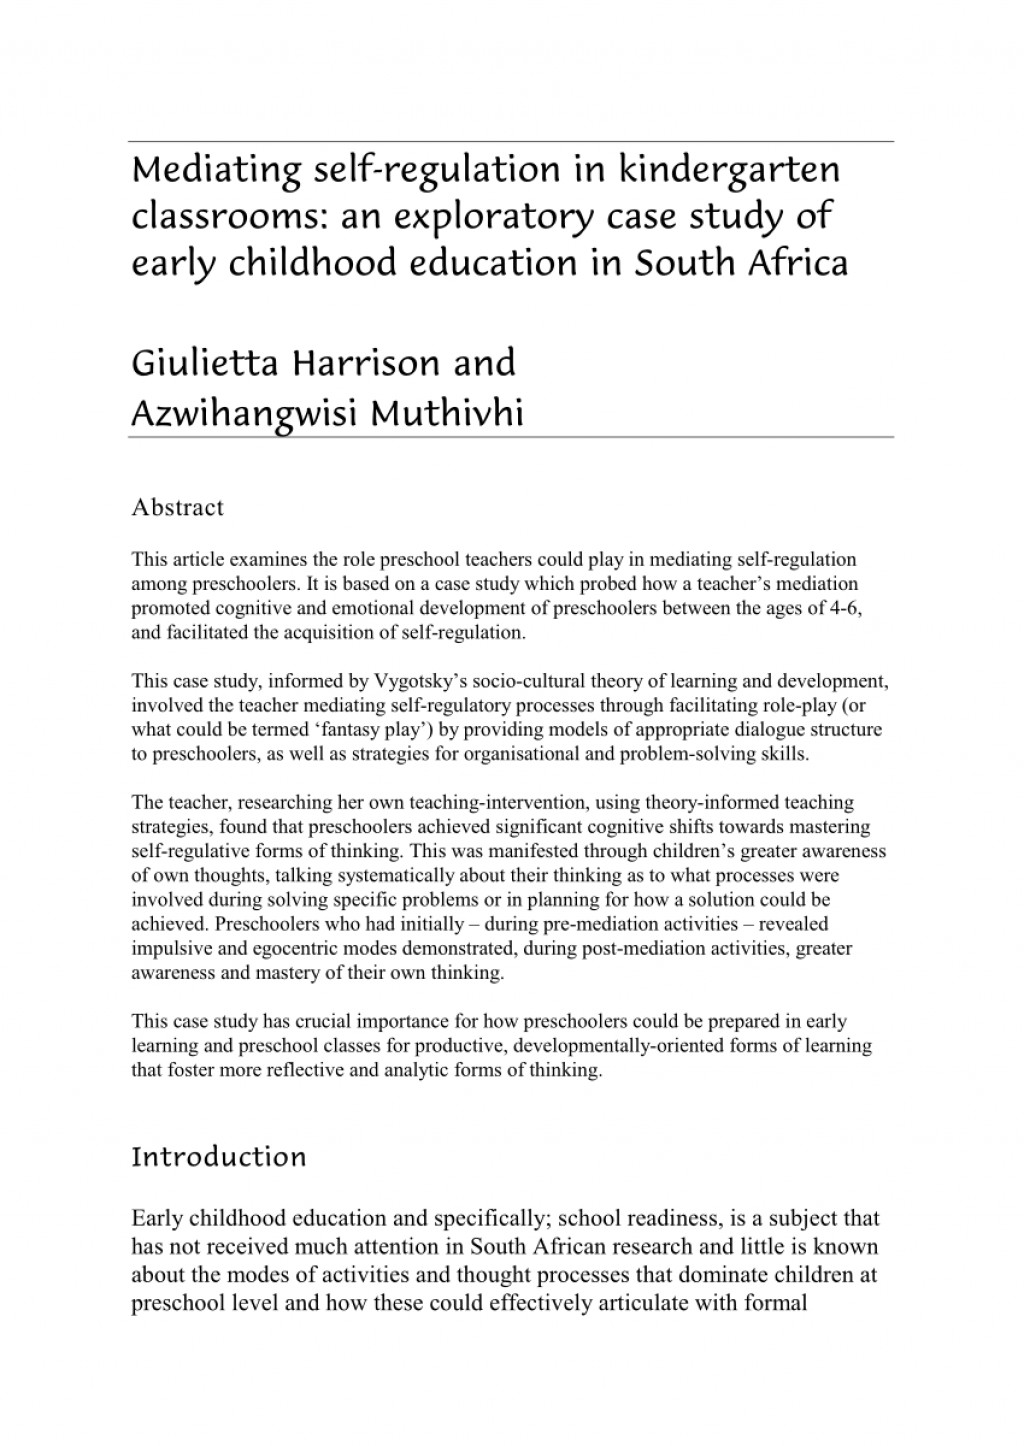 003 Research Paper Early Childhood Education Examples Marvelous Large